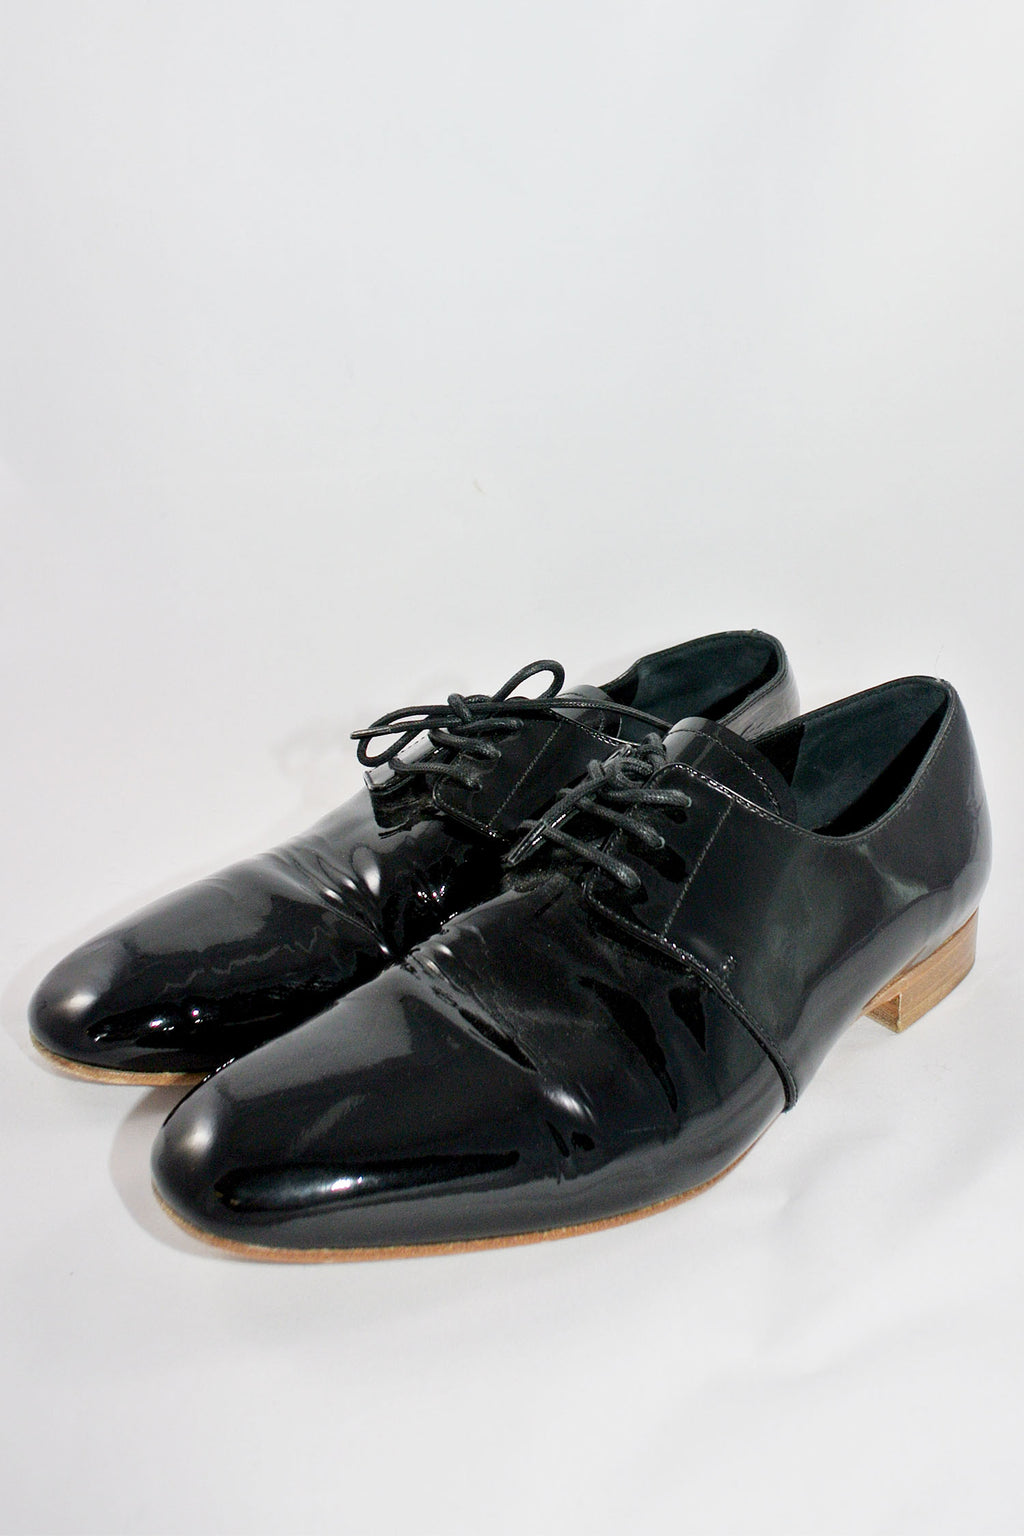 Prada Black Patent Loafers Sz 38